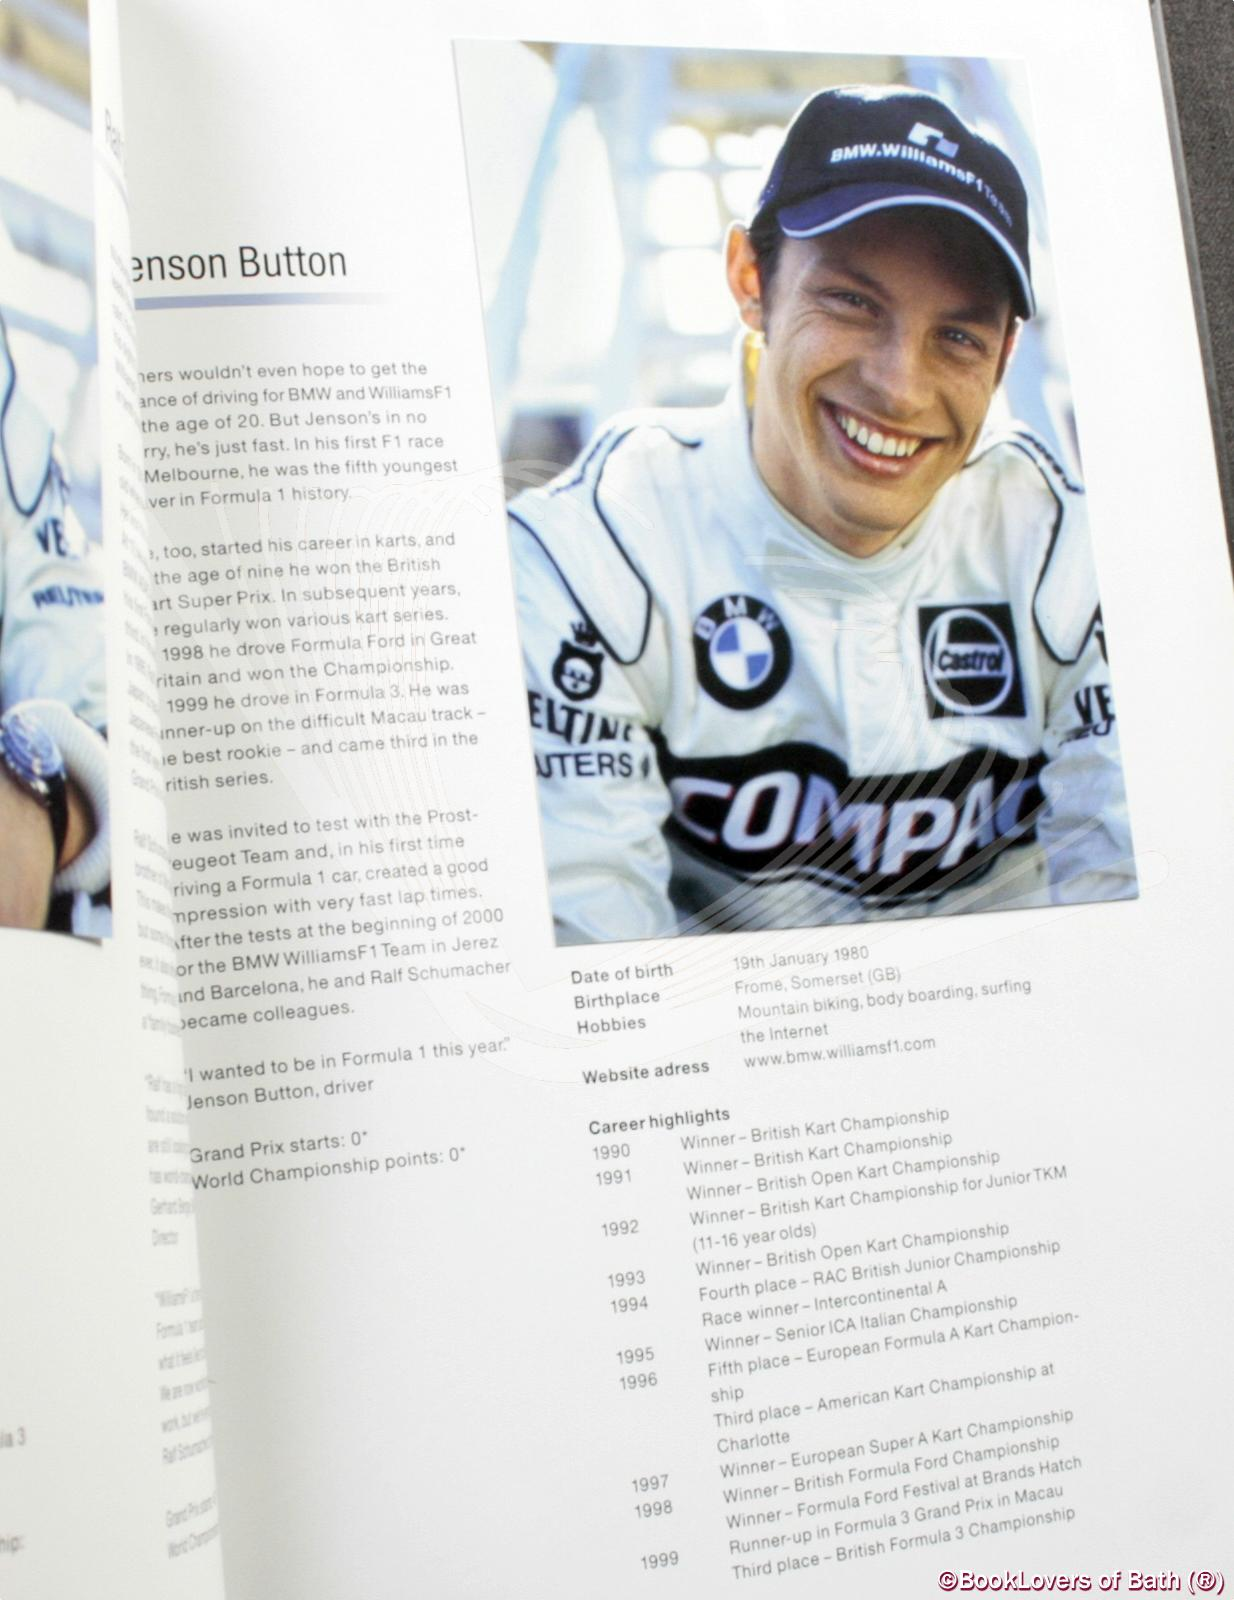 BMW.Williams F1 Team: The Team in 2000 - Anon.